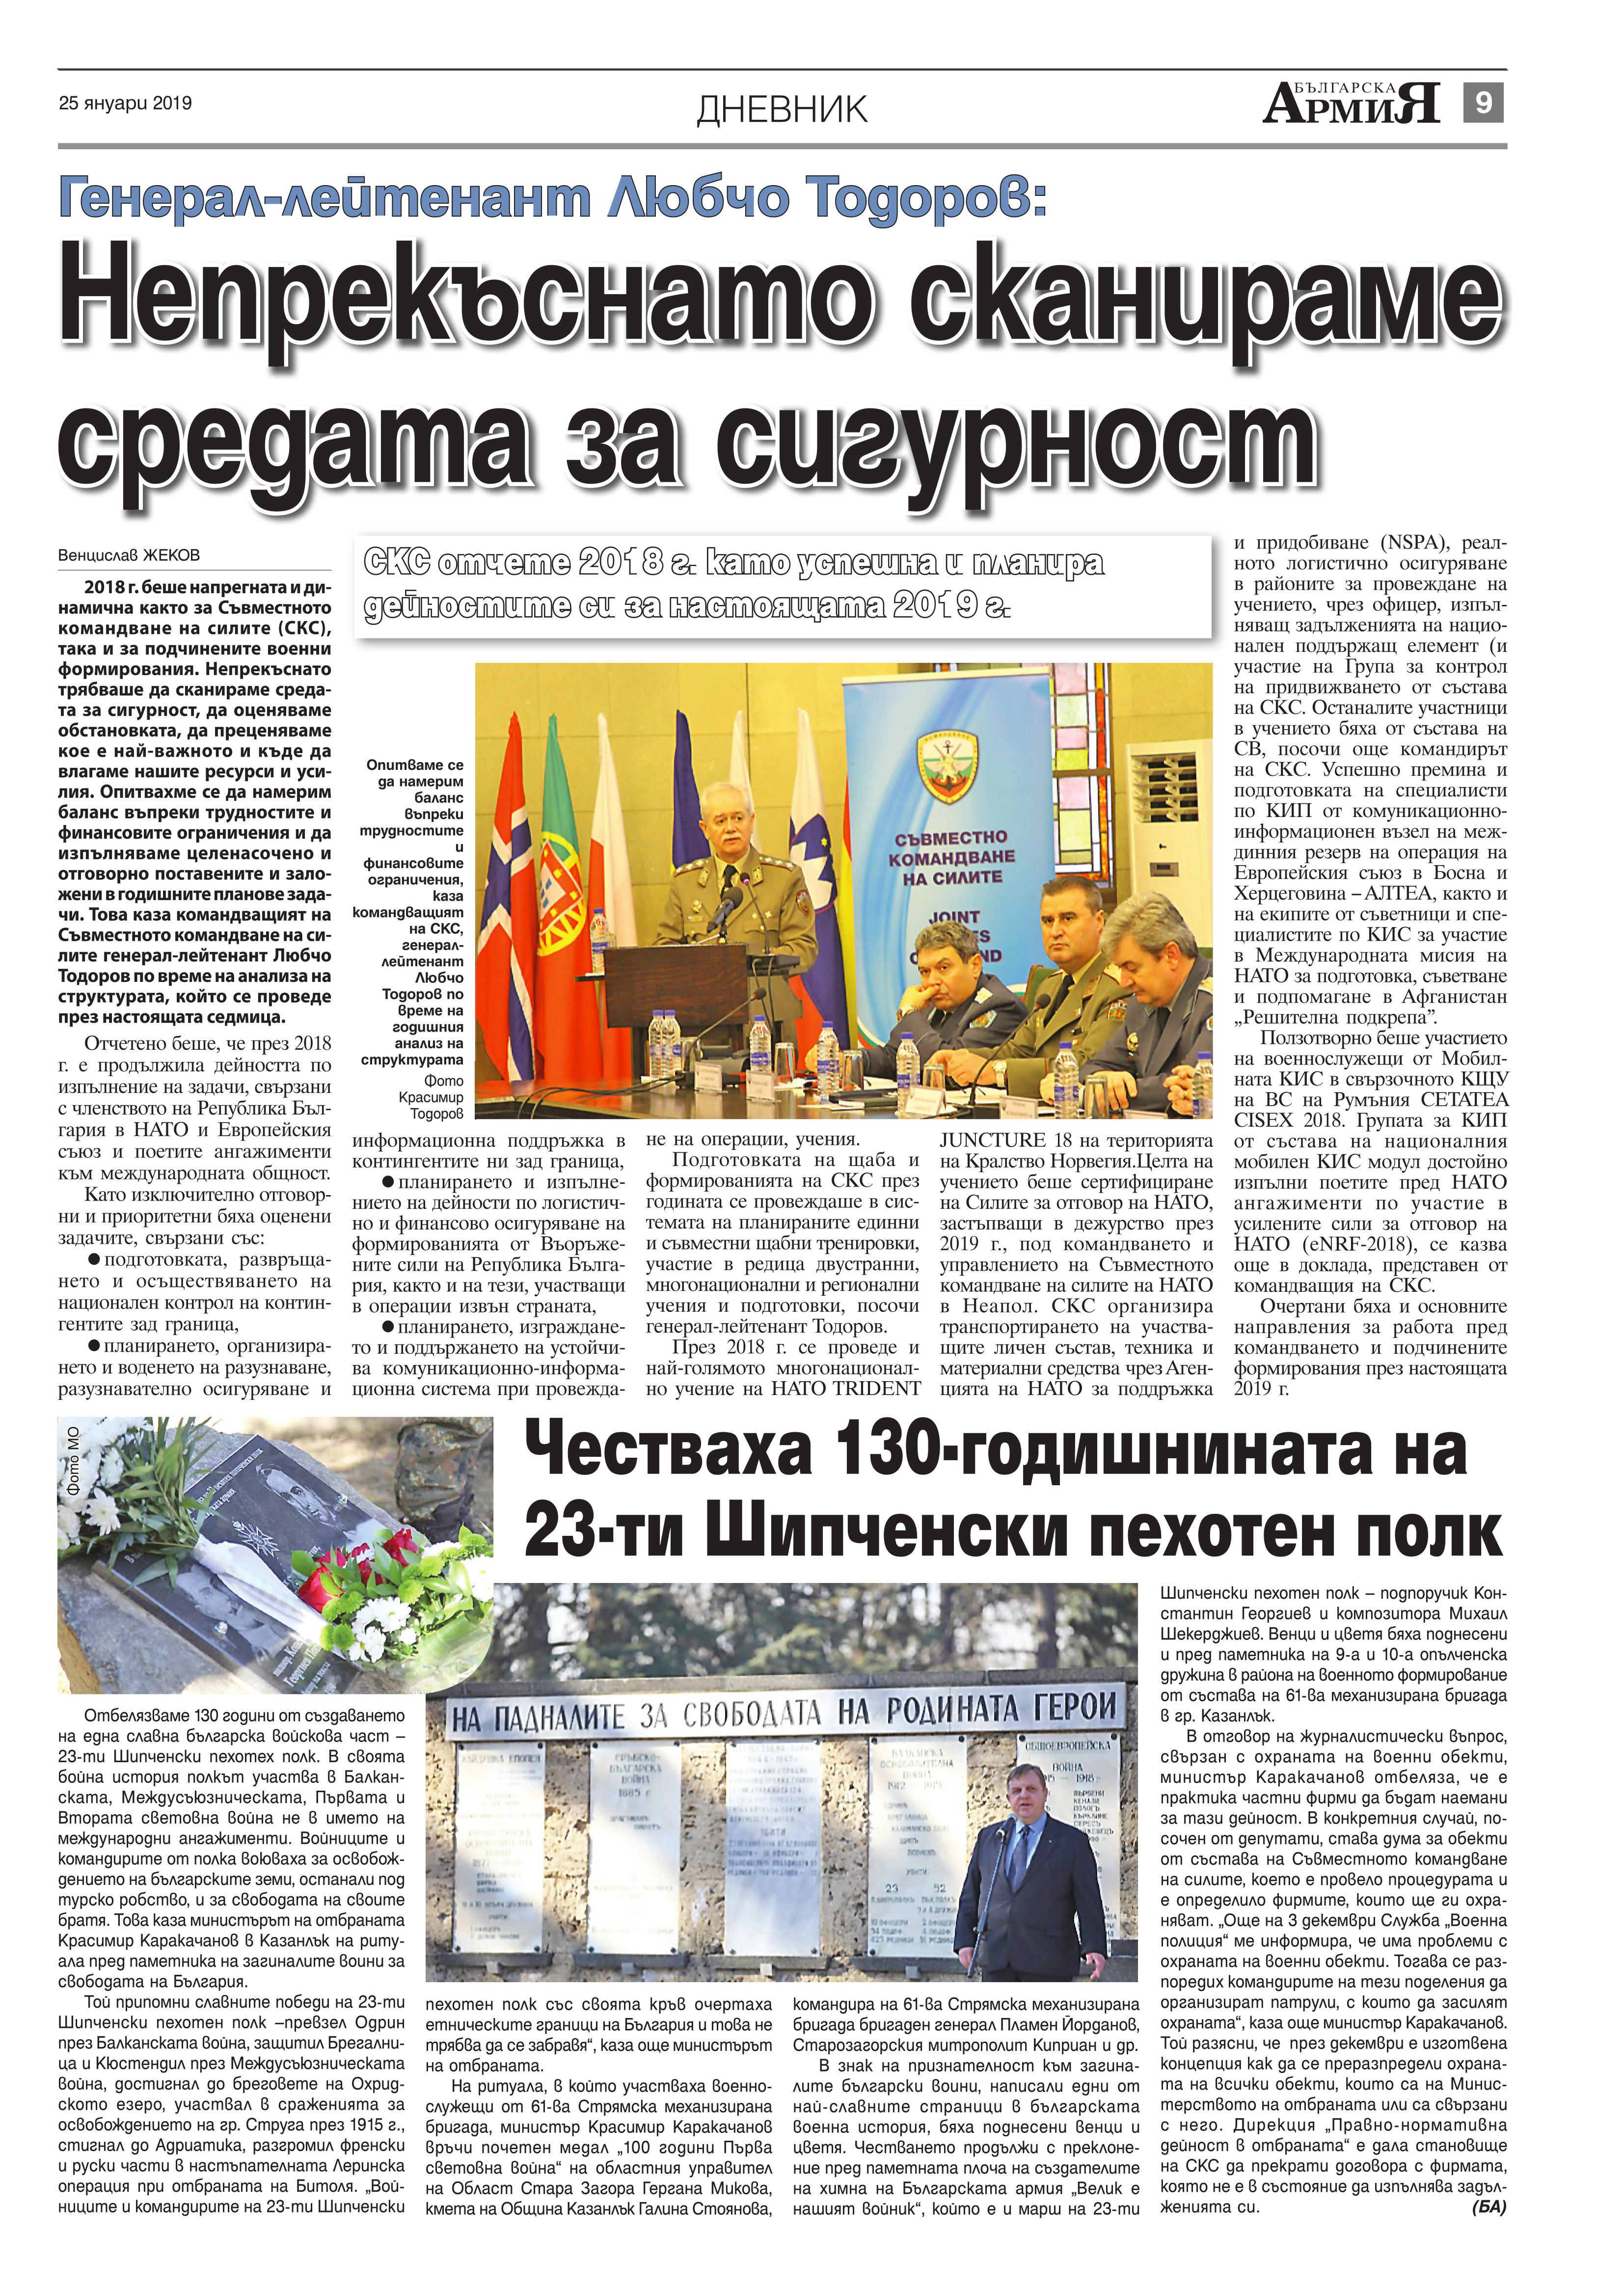 https://armymedia.bg/wp-content/uploads/2015/06/09.page1_-79.jpg